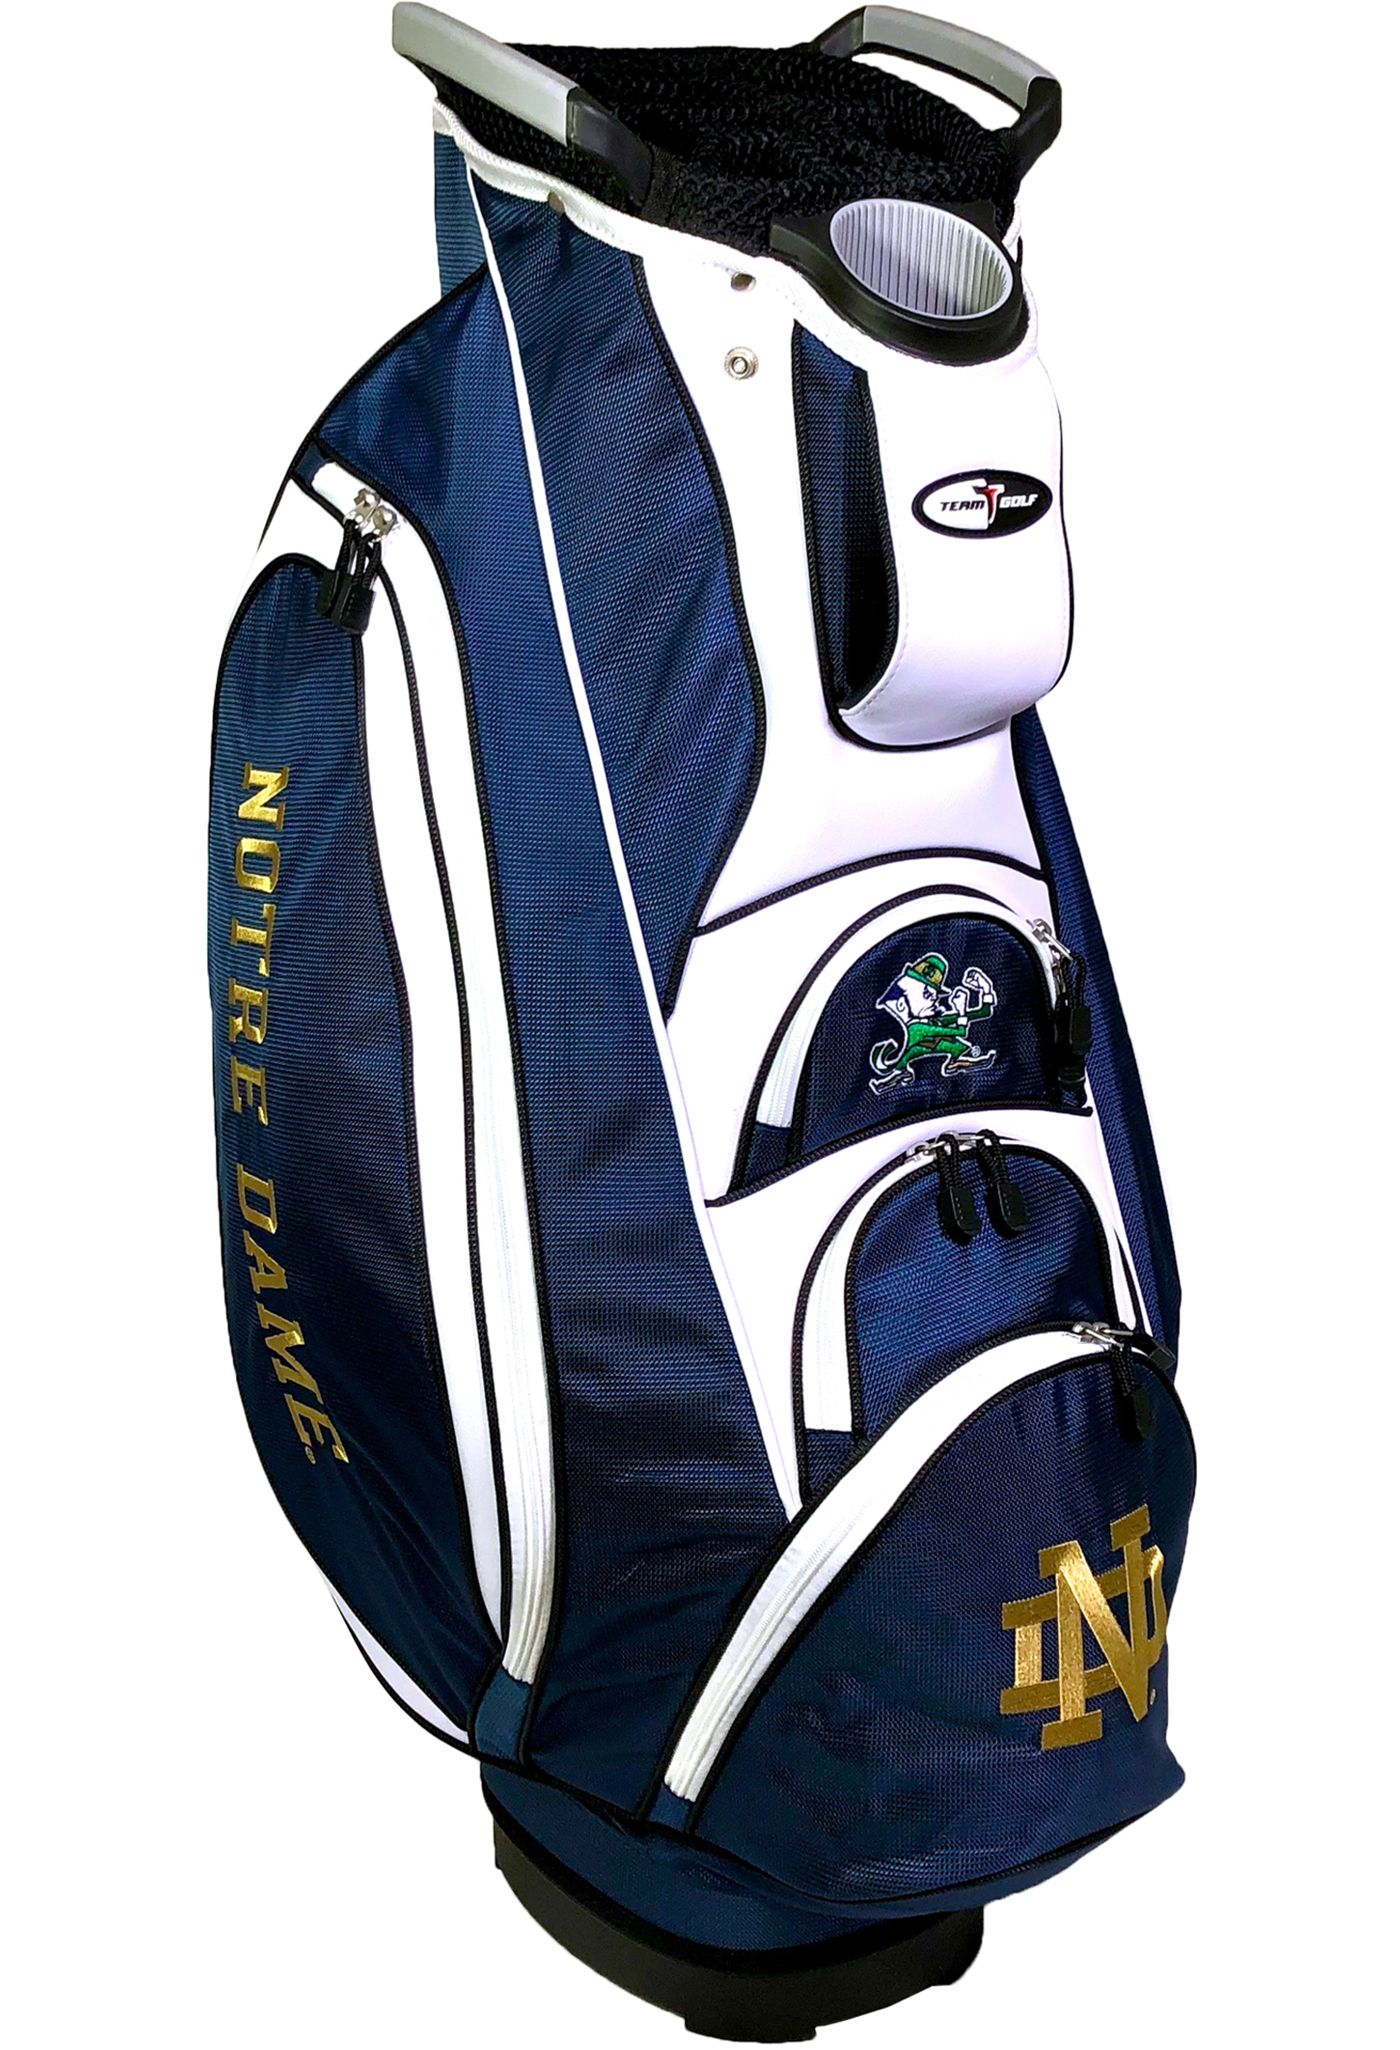 Team Golf Victory Notre Dame Fighting Irish Cart Bag